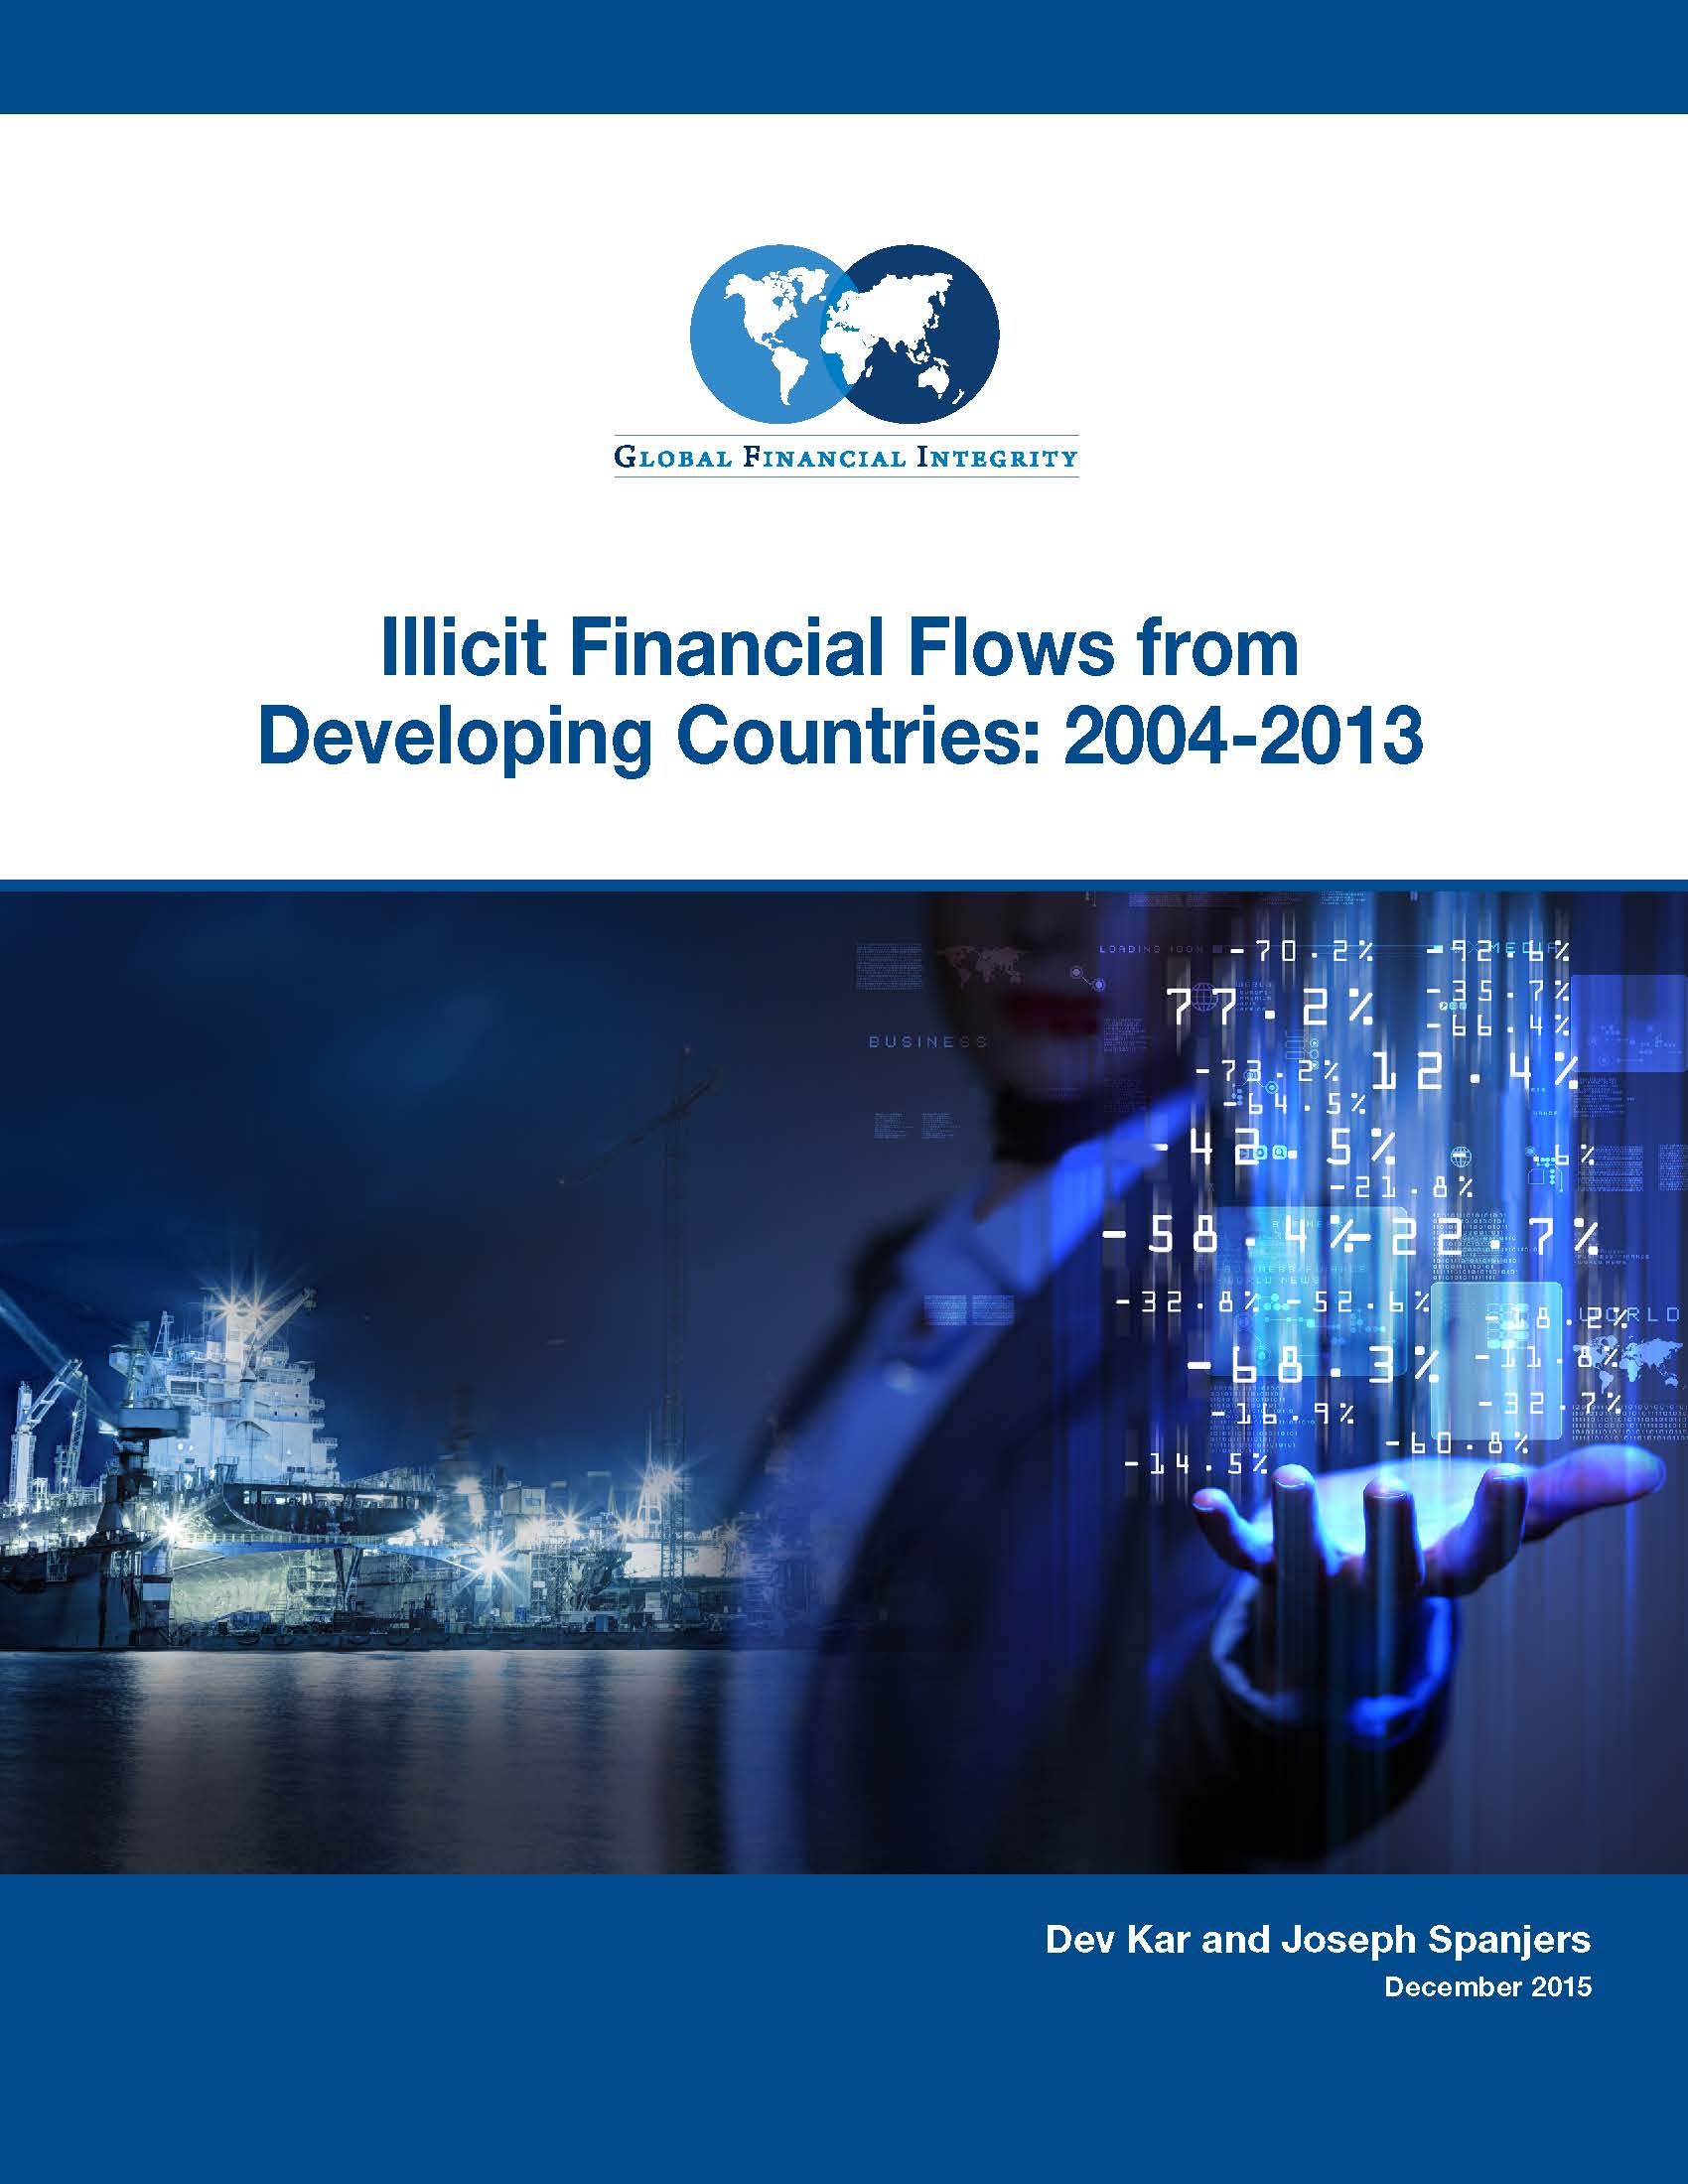 New Study: Illicit Financial Flows Hit US$1.1 Trillion in 2013